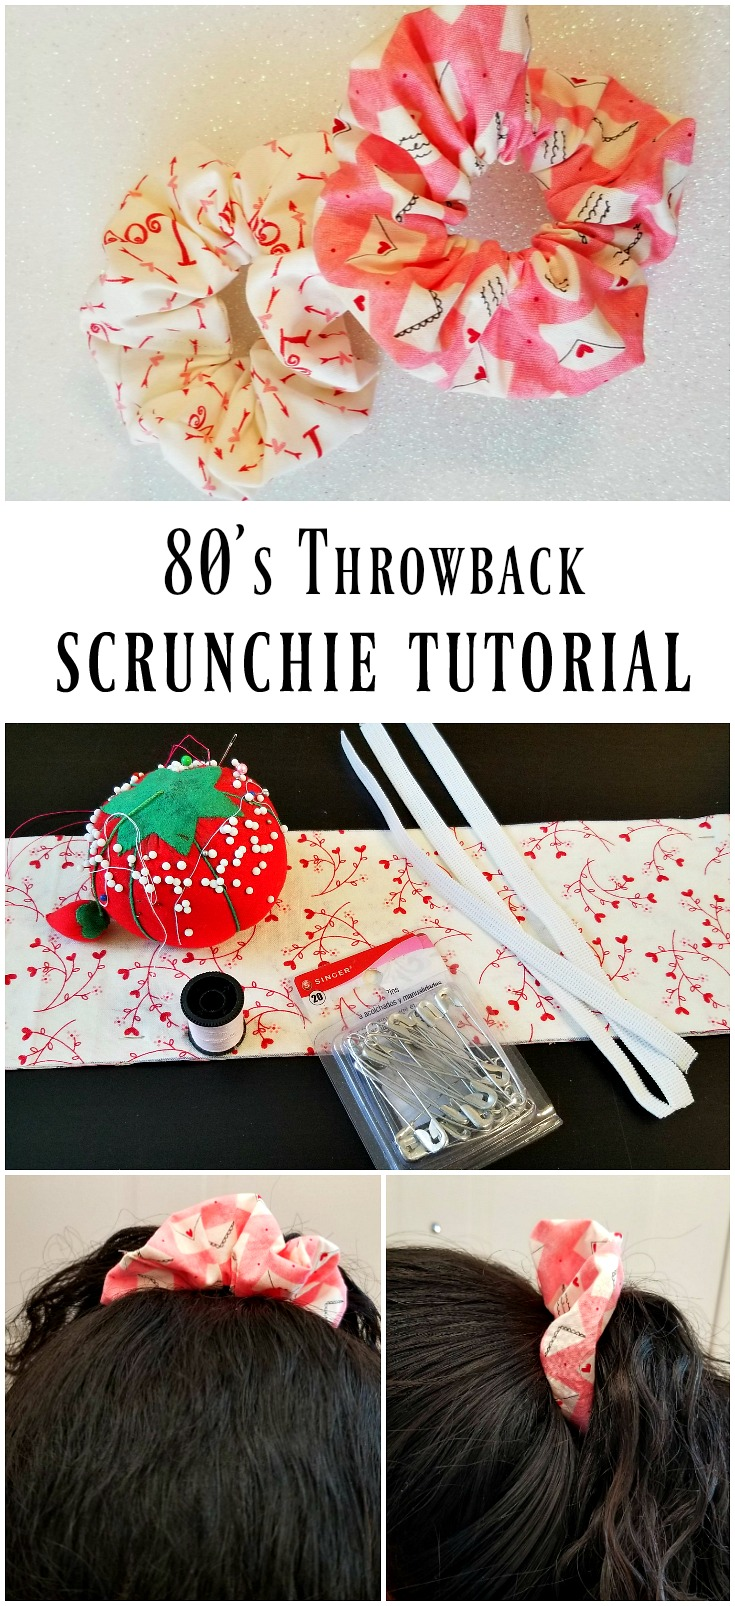 Scrunchie tutorial - 80's throwback trend